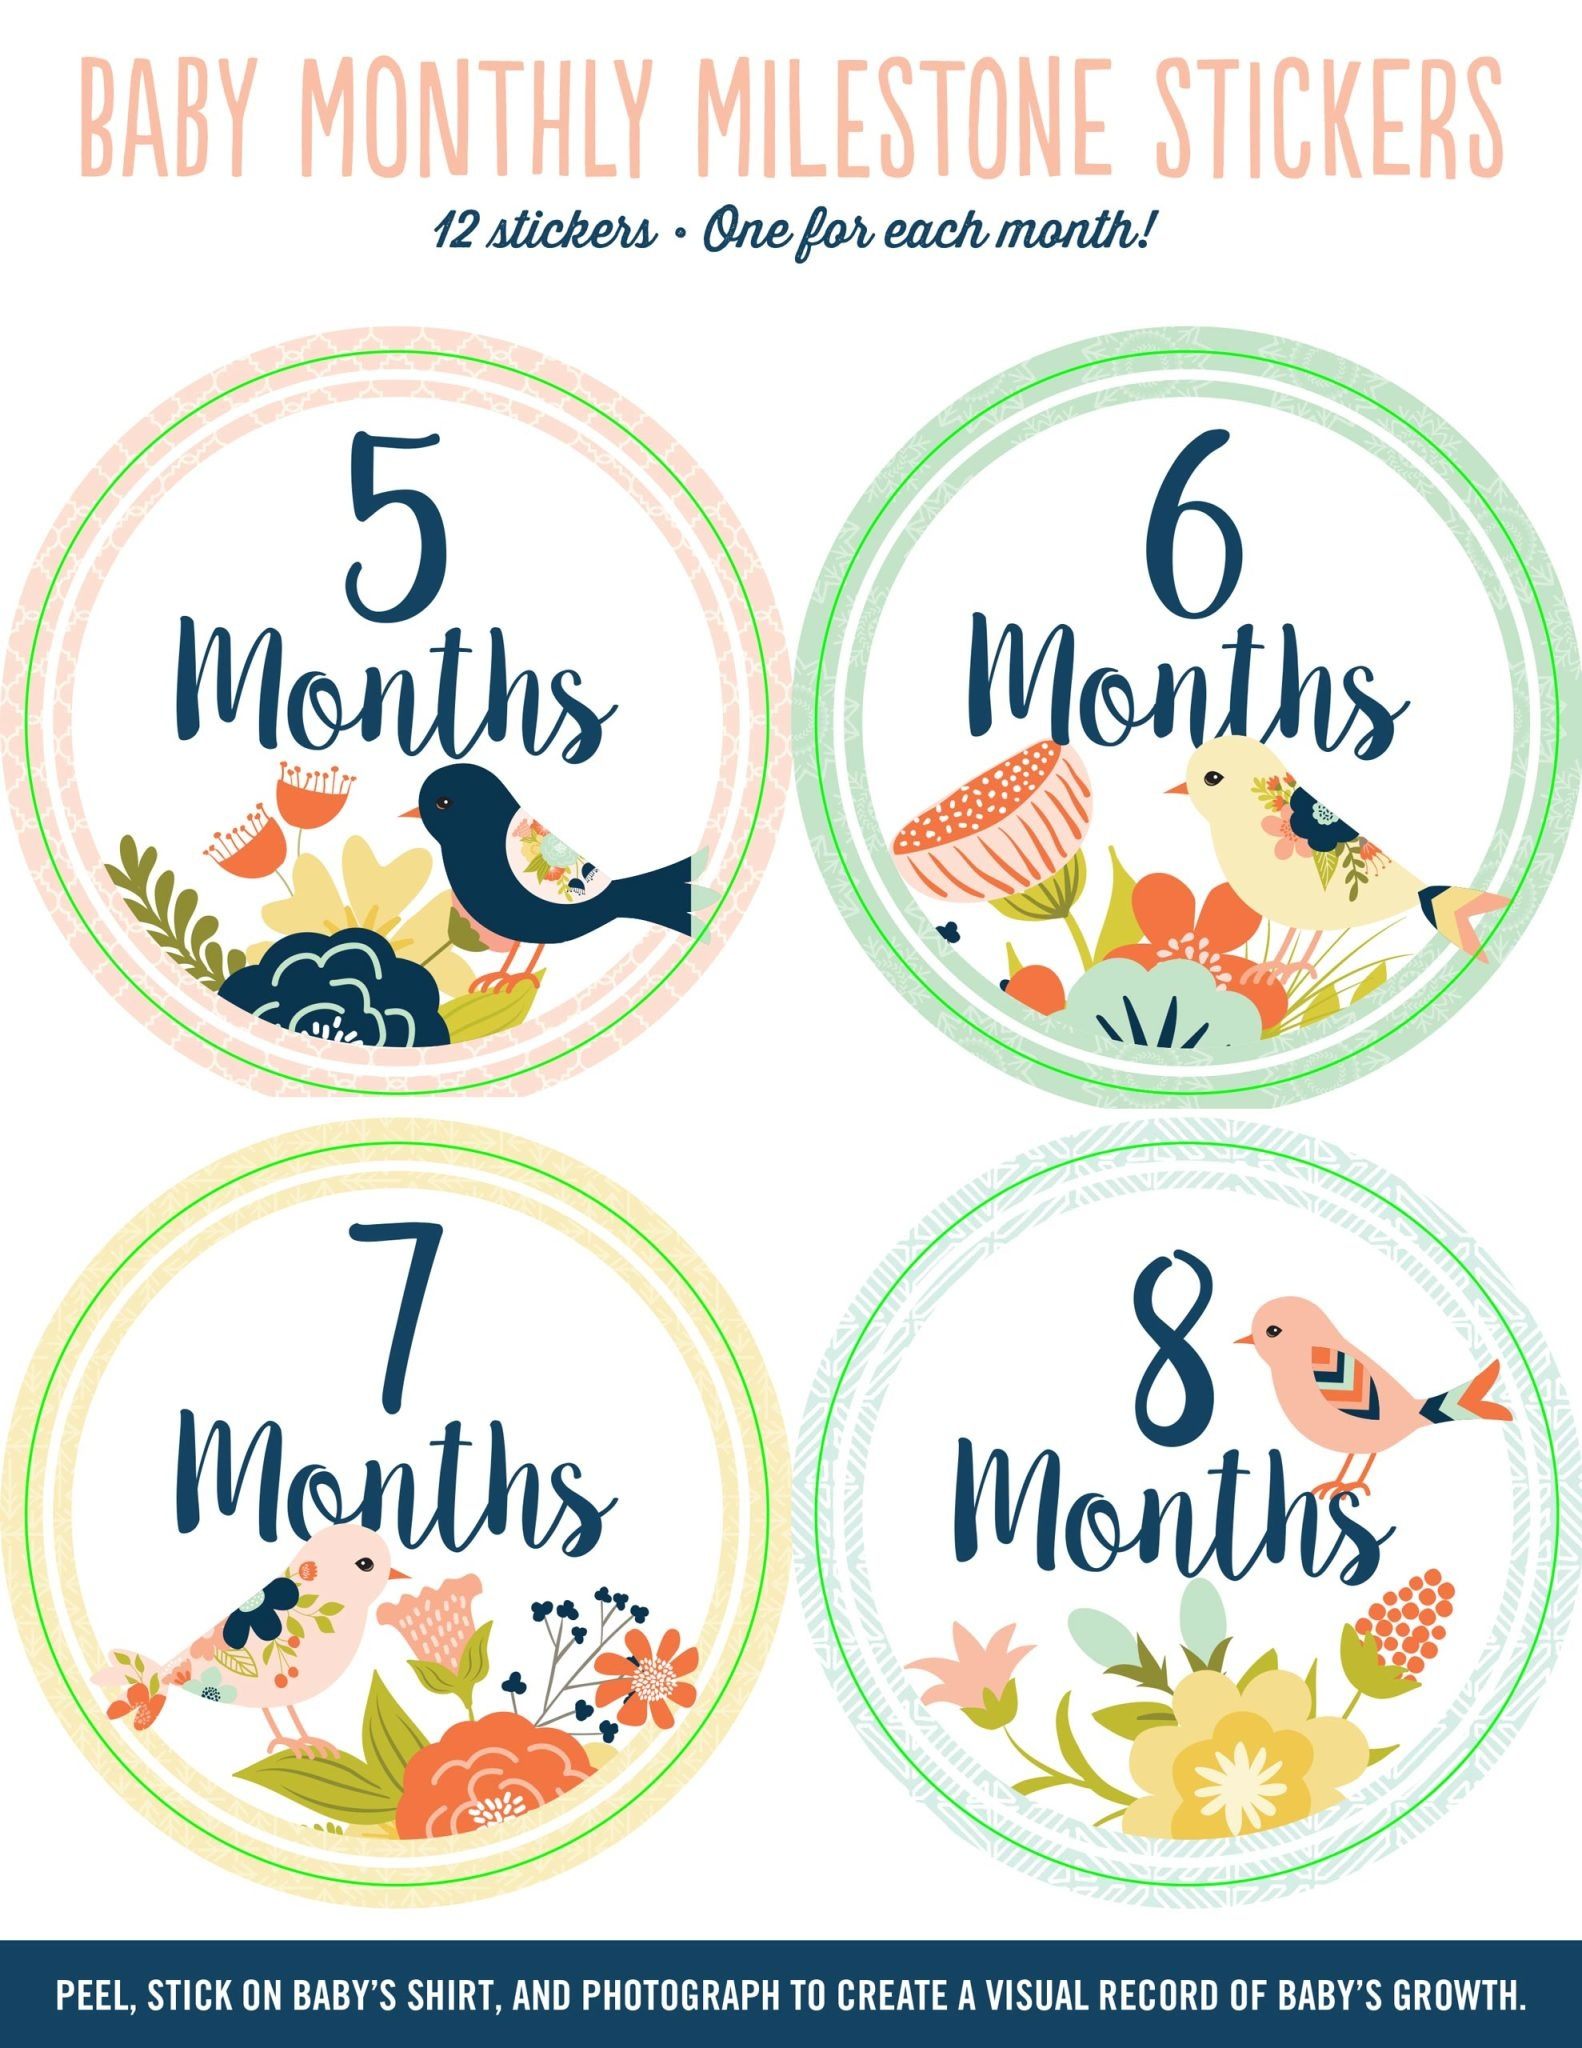 Fleurish Home Baby's Monthly Milestone Stickers: Birds